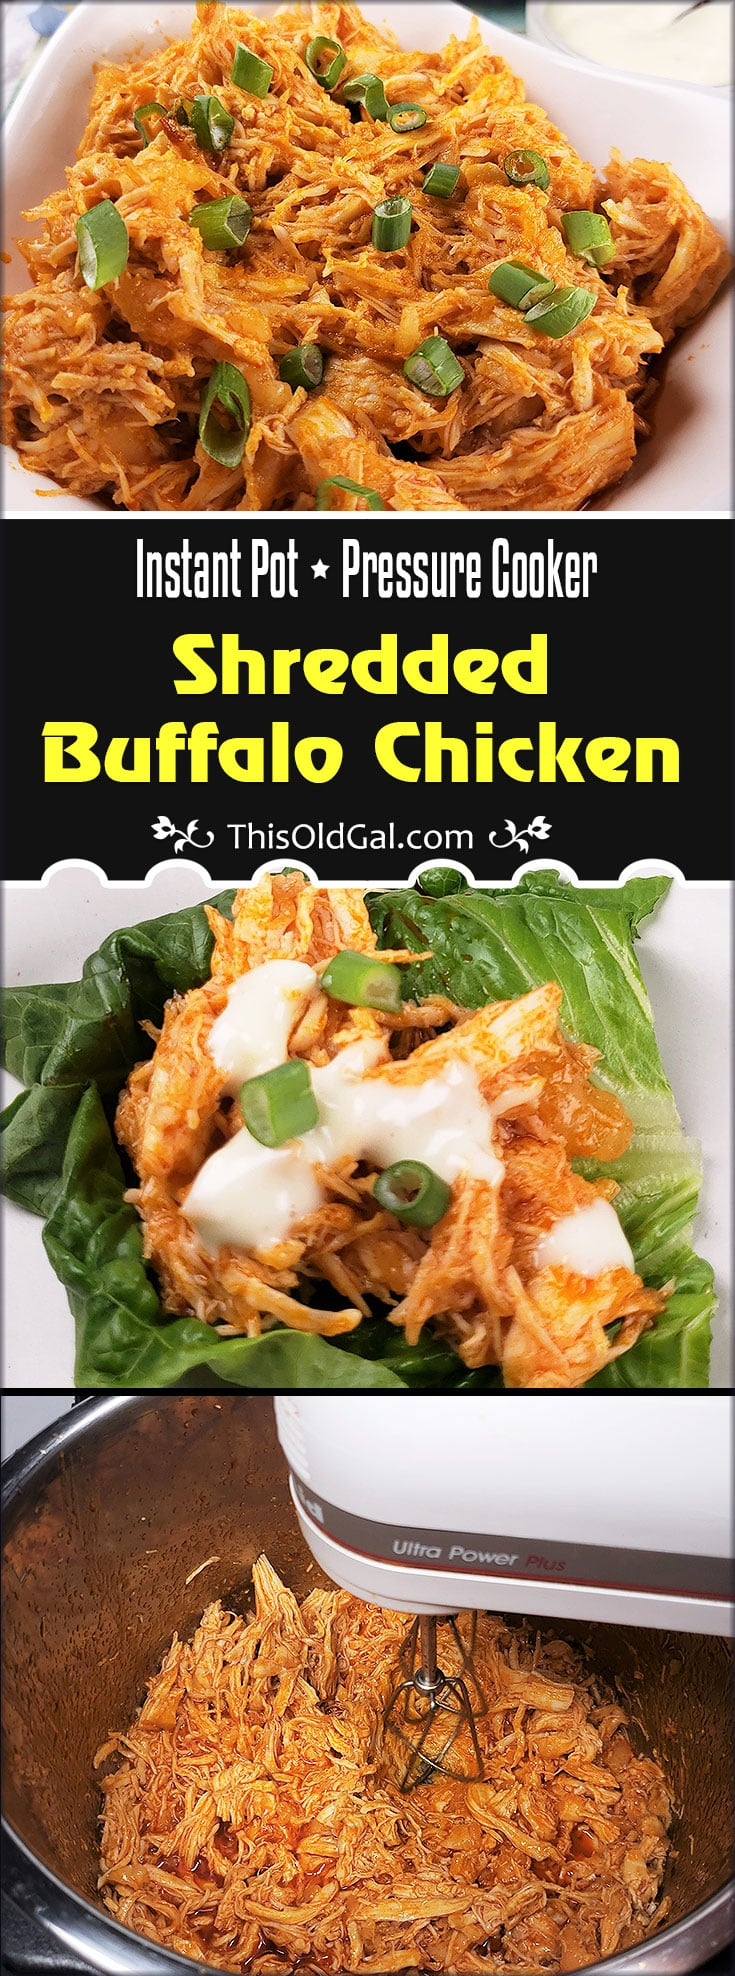 Low Carb Pressure Cooker Shredded Buffalo Chicken